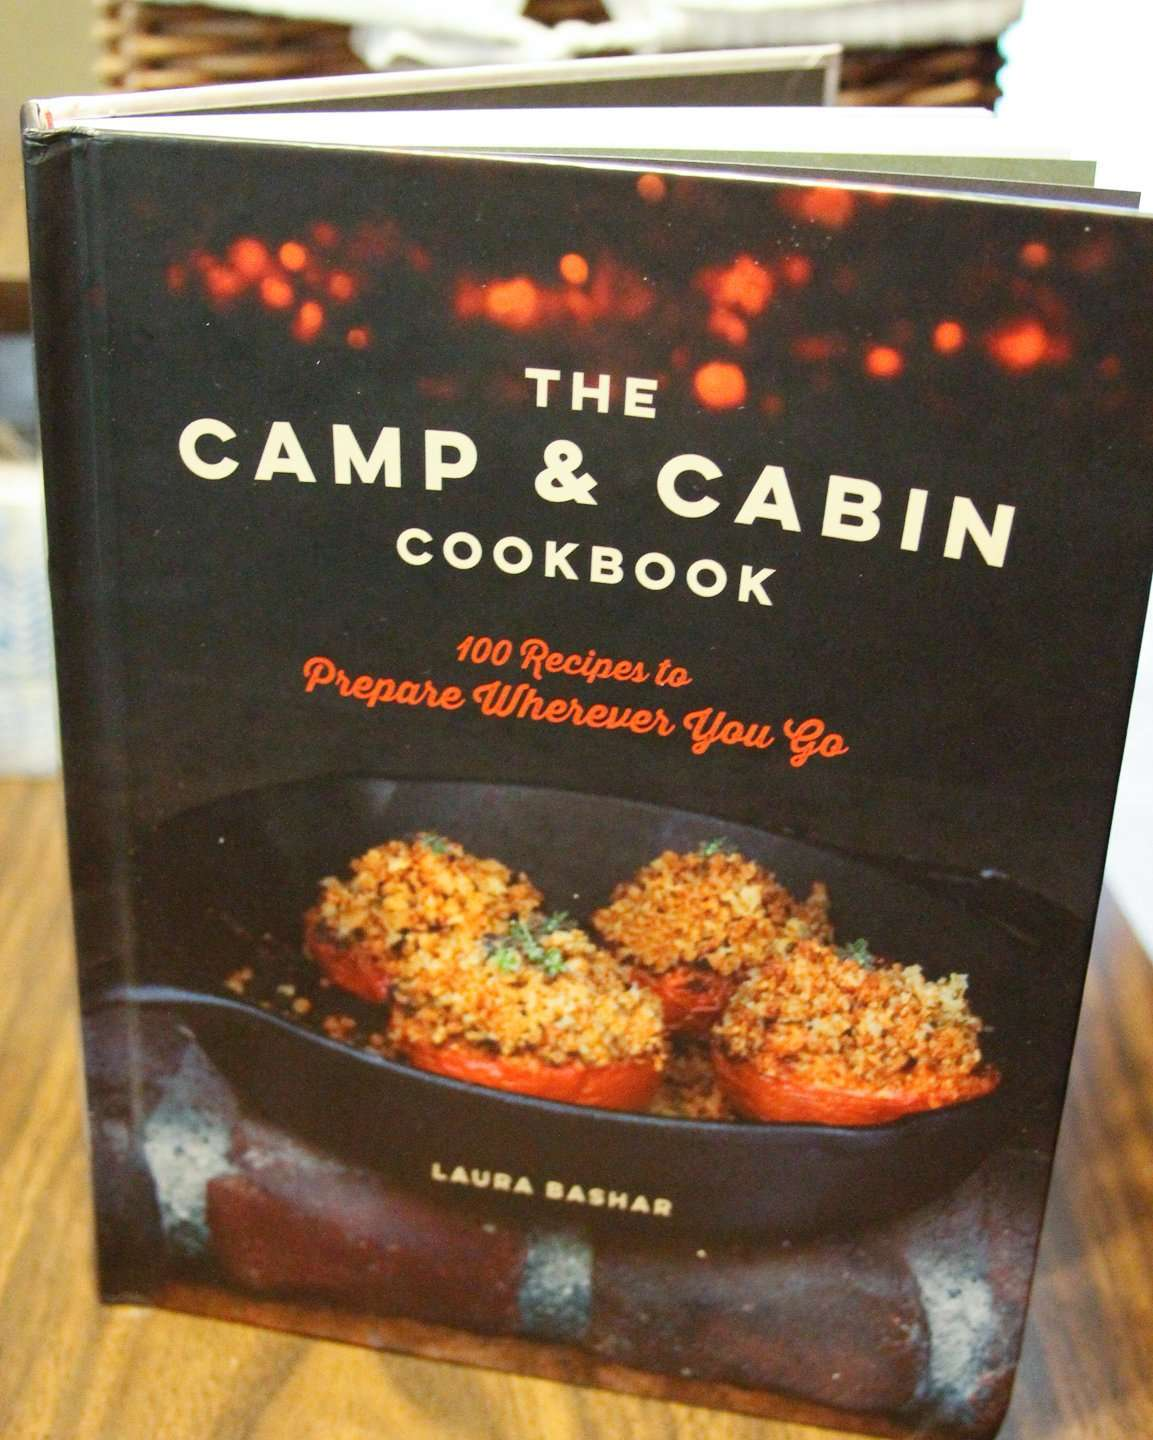 The Camp & Cabin cookbook is perfect for camping recipes.